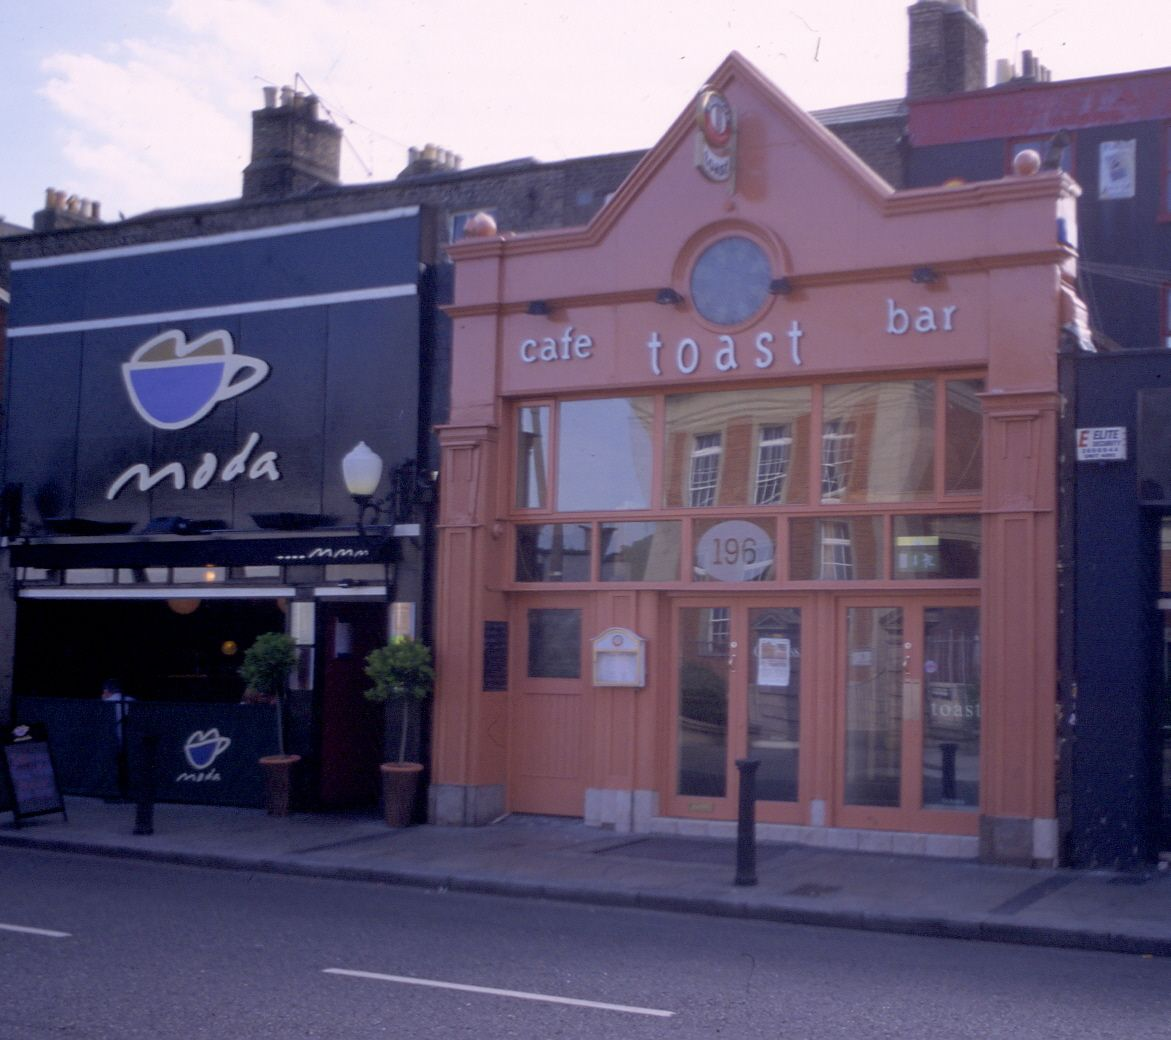 10 of the best pubs in Dublin